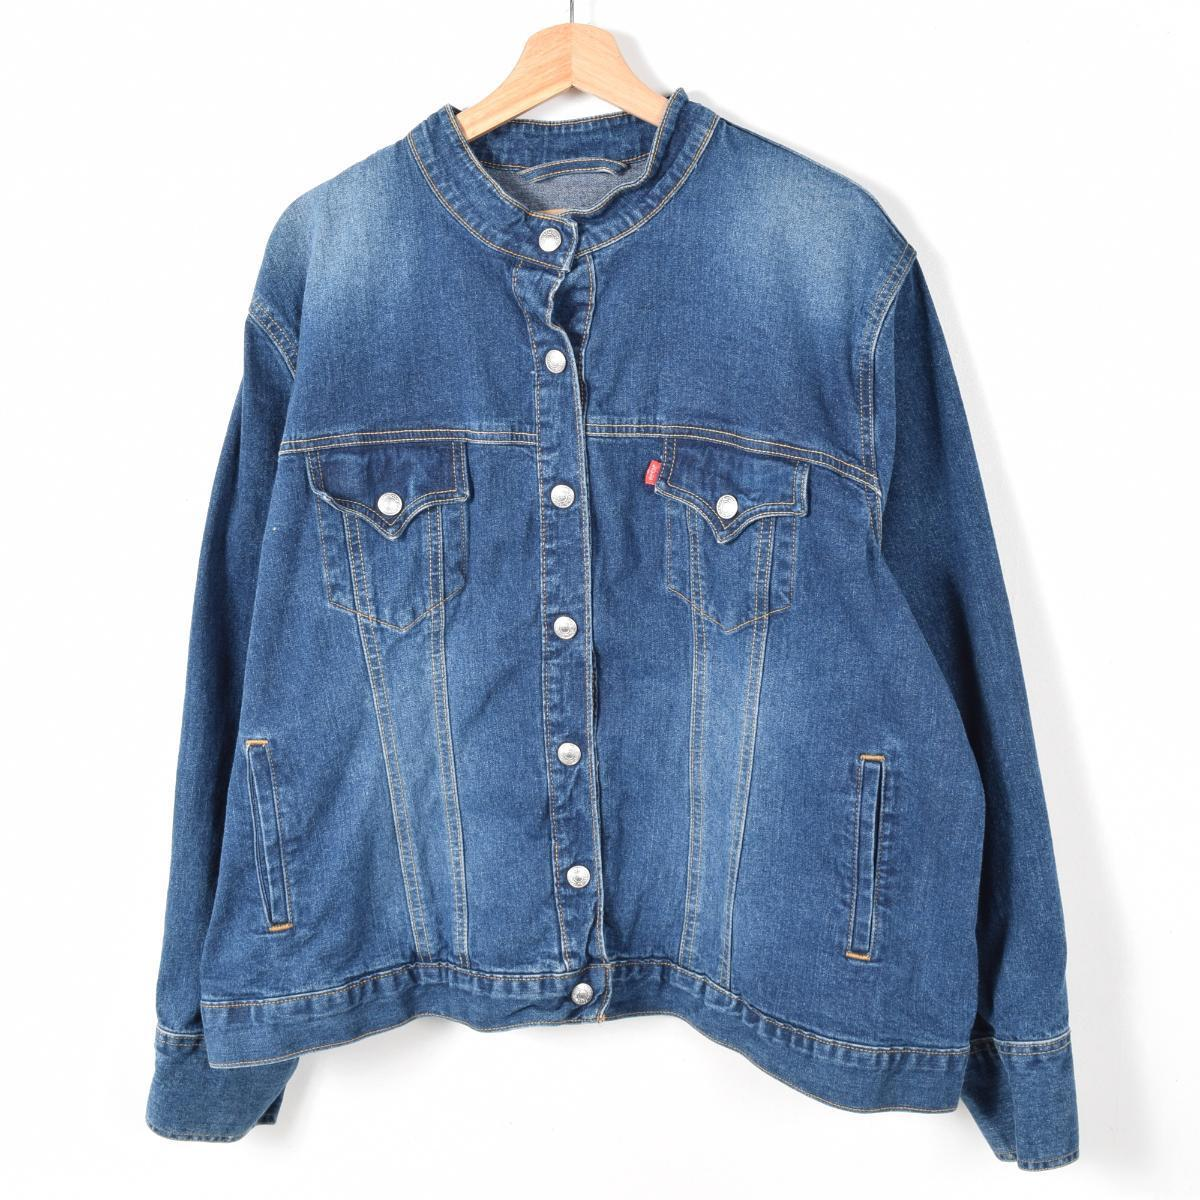 VINTAGE CLOTHING JAM TRADING | Rakuten Global Market: Levis no ...